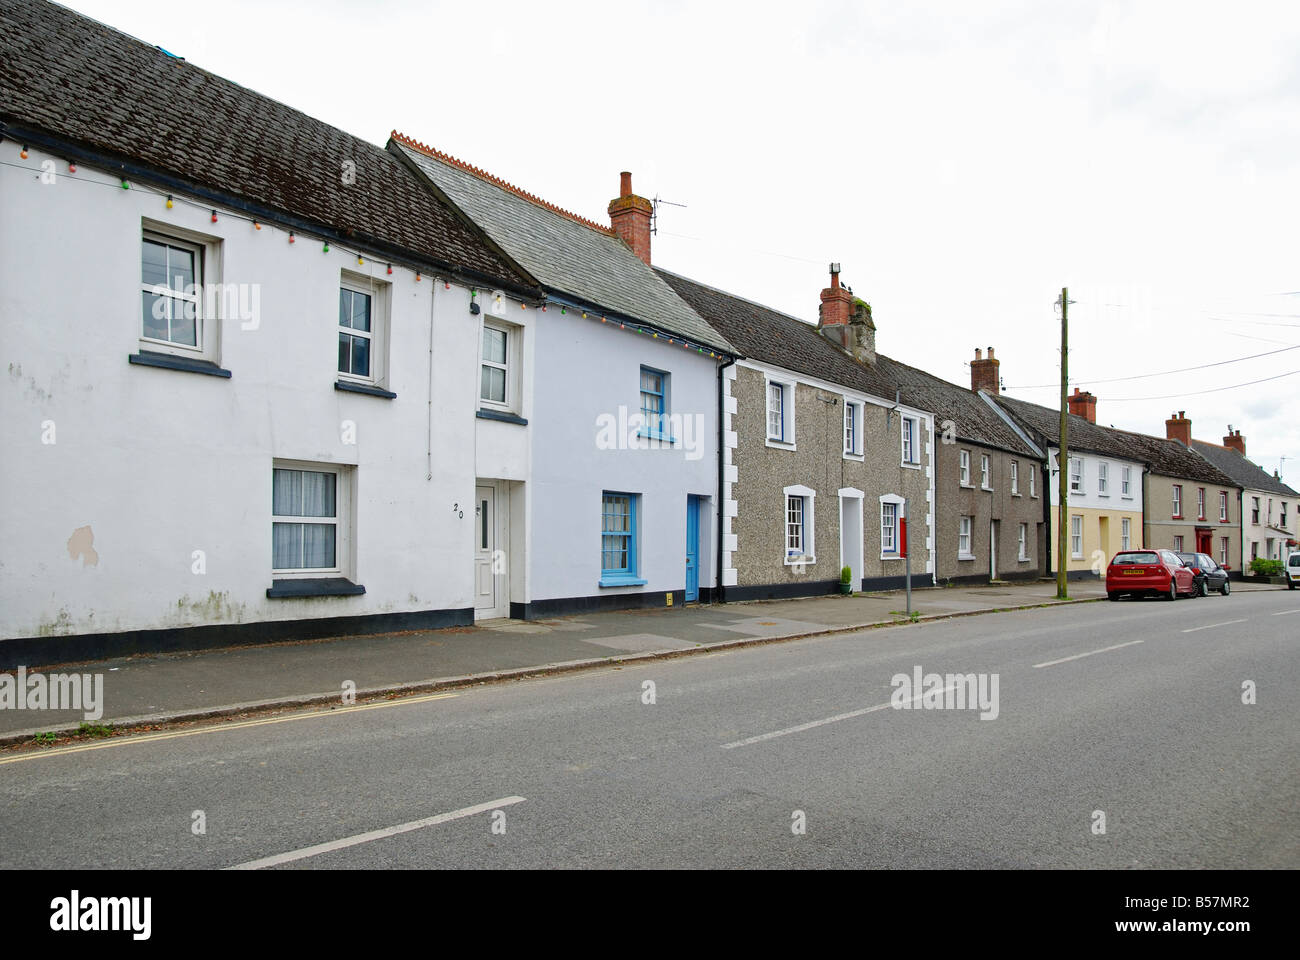 traditional cornish cottages in the main street at tregony in cornwall,uk Stock Photo